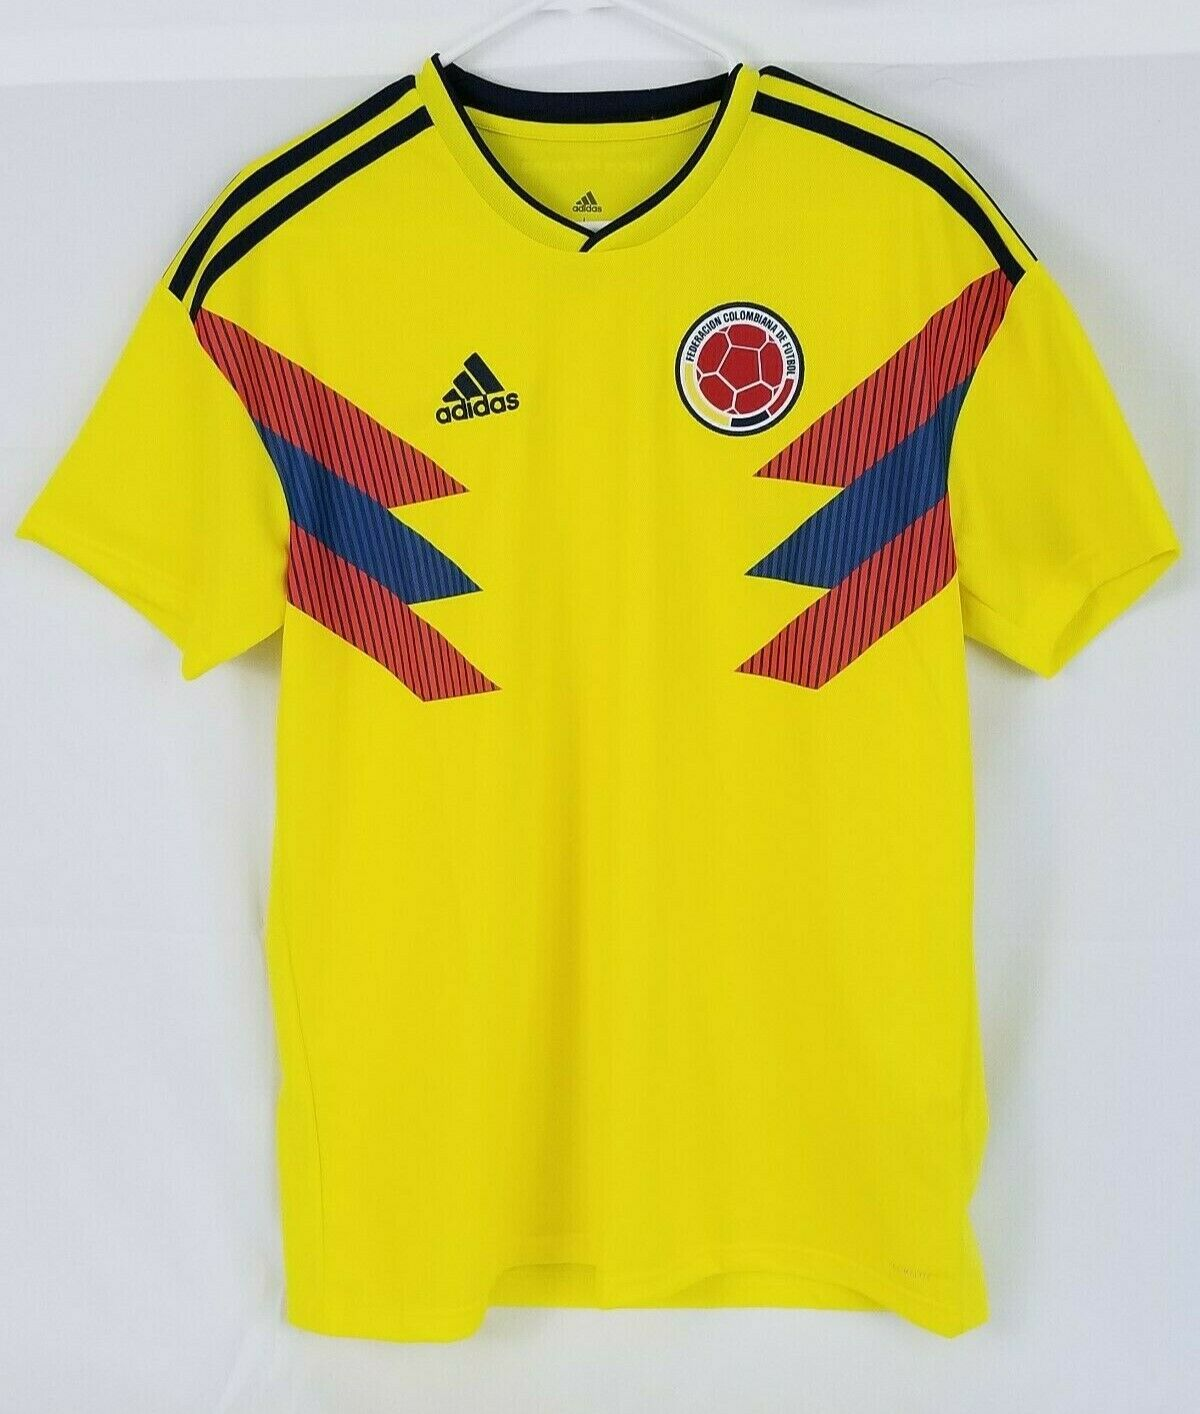 d07554d4569 NWT ADIDAS 2018 Colombia Home Soccer Jersey. Size Large. (CW1526 ...